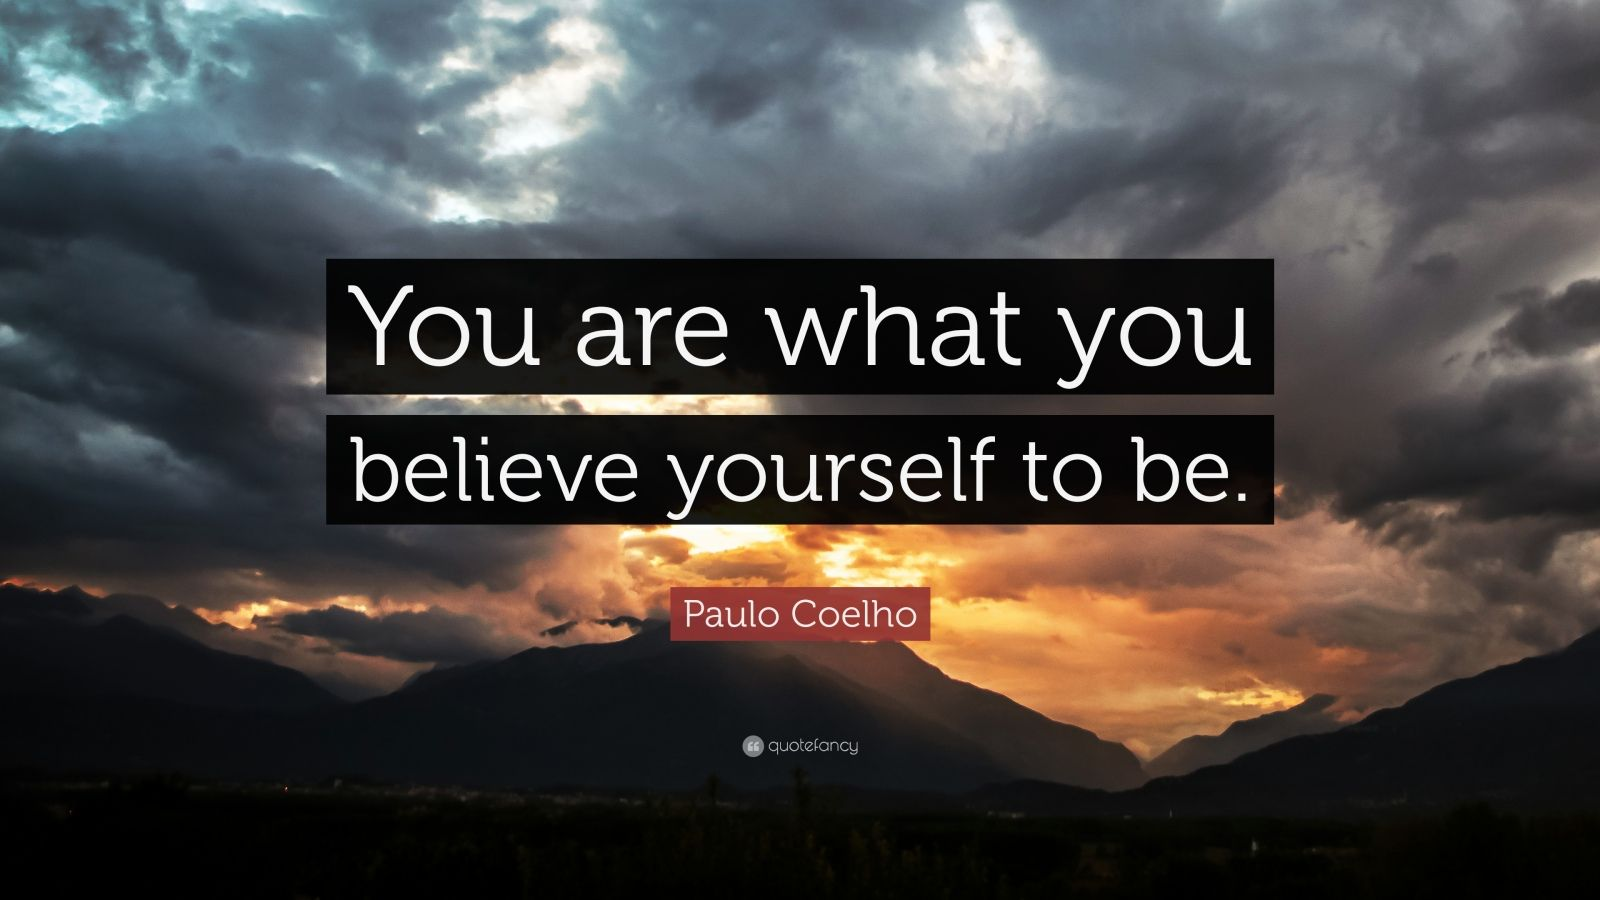 paulo coelho quotes quotefancy paulo coelho quote you are what you believe yourself to be